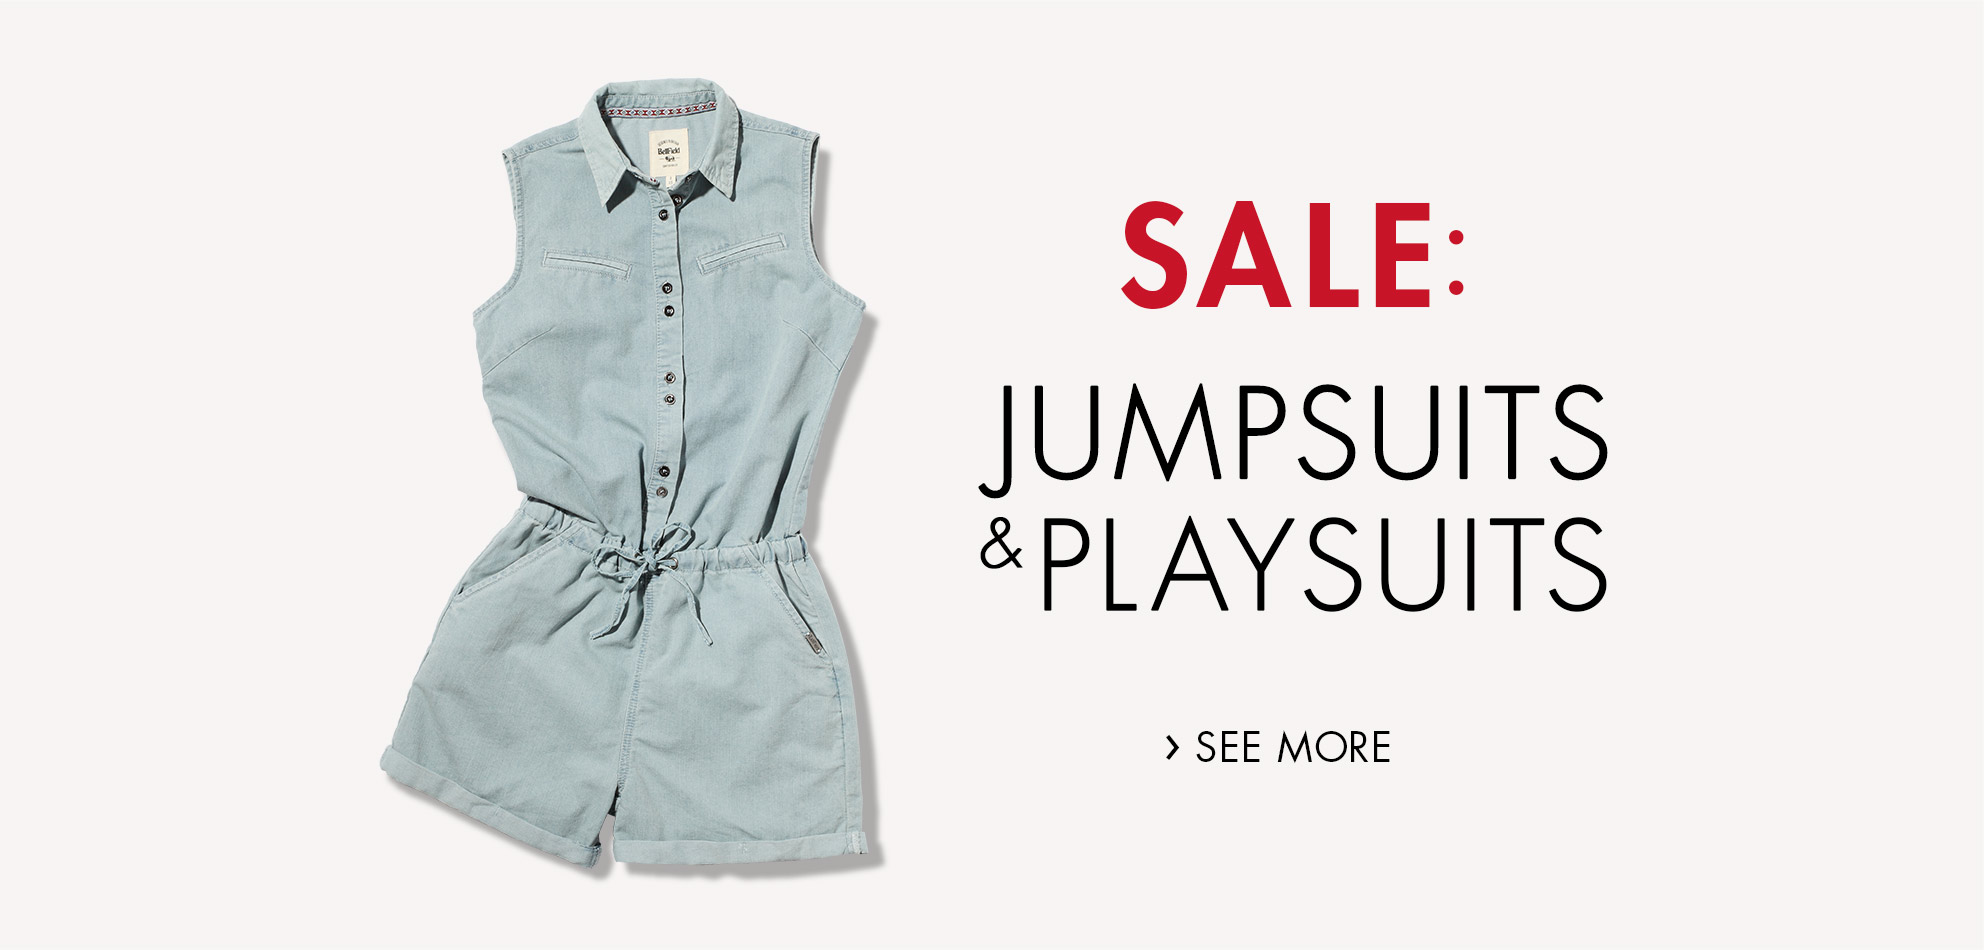 Sale: Jumpsuits & Playsuits